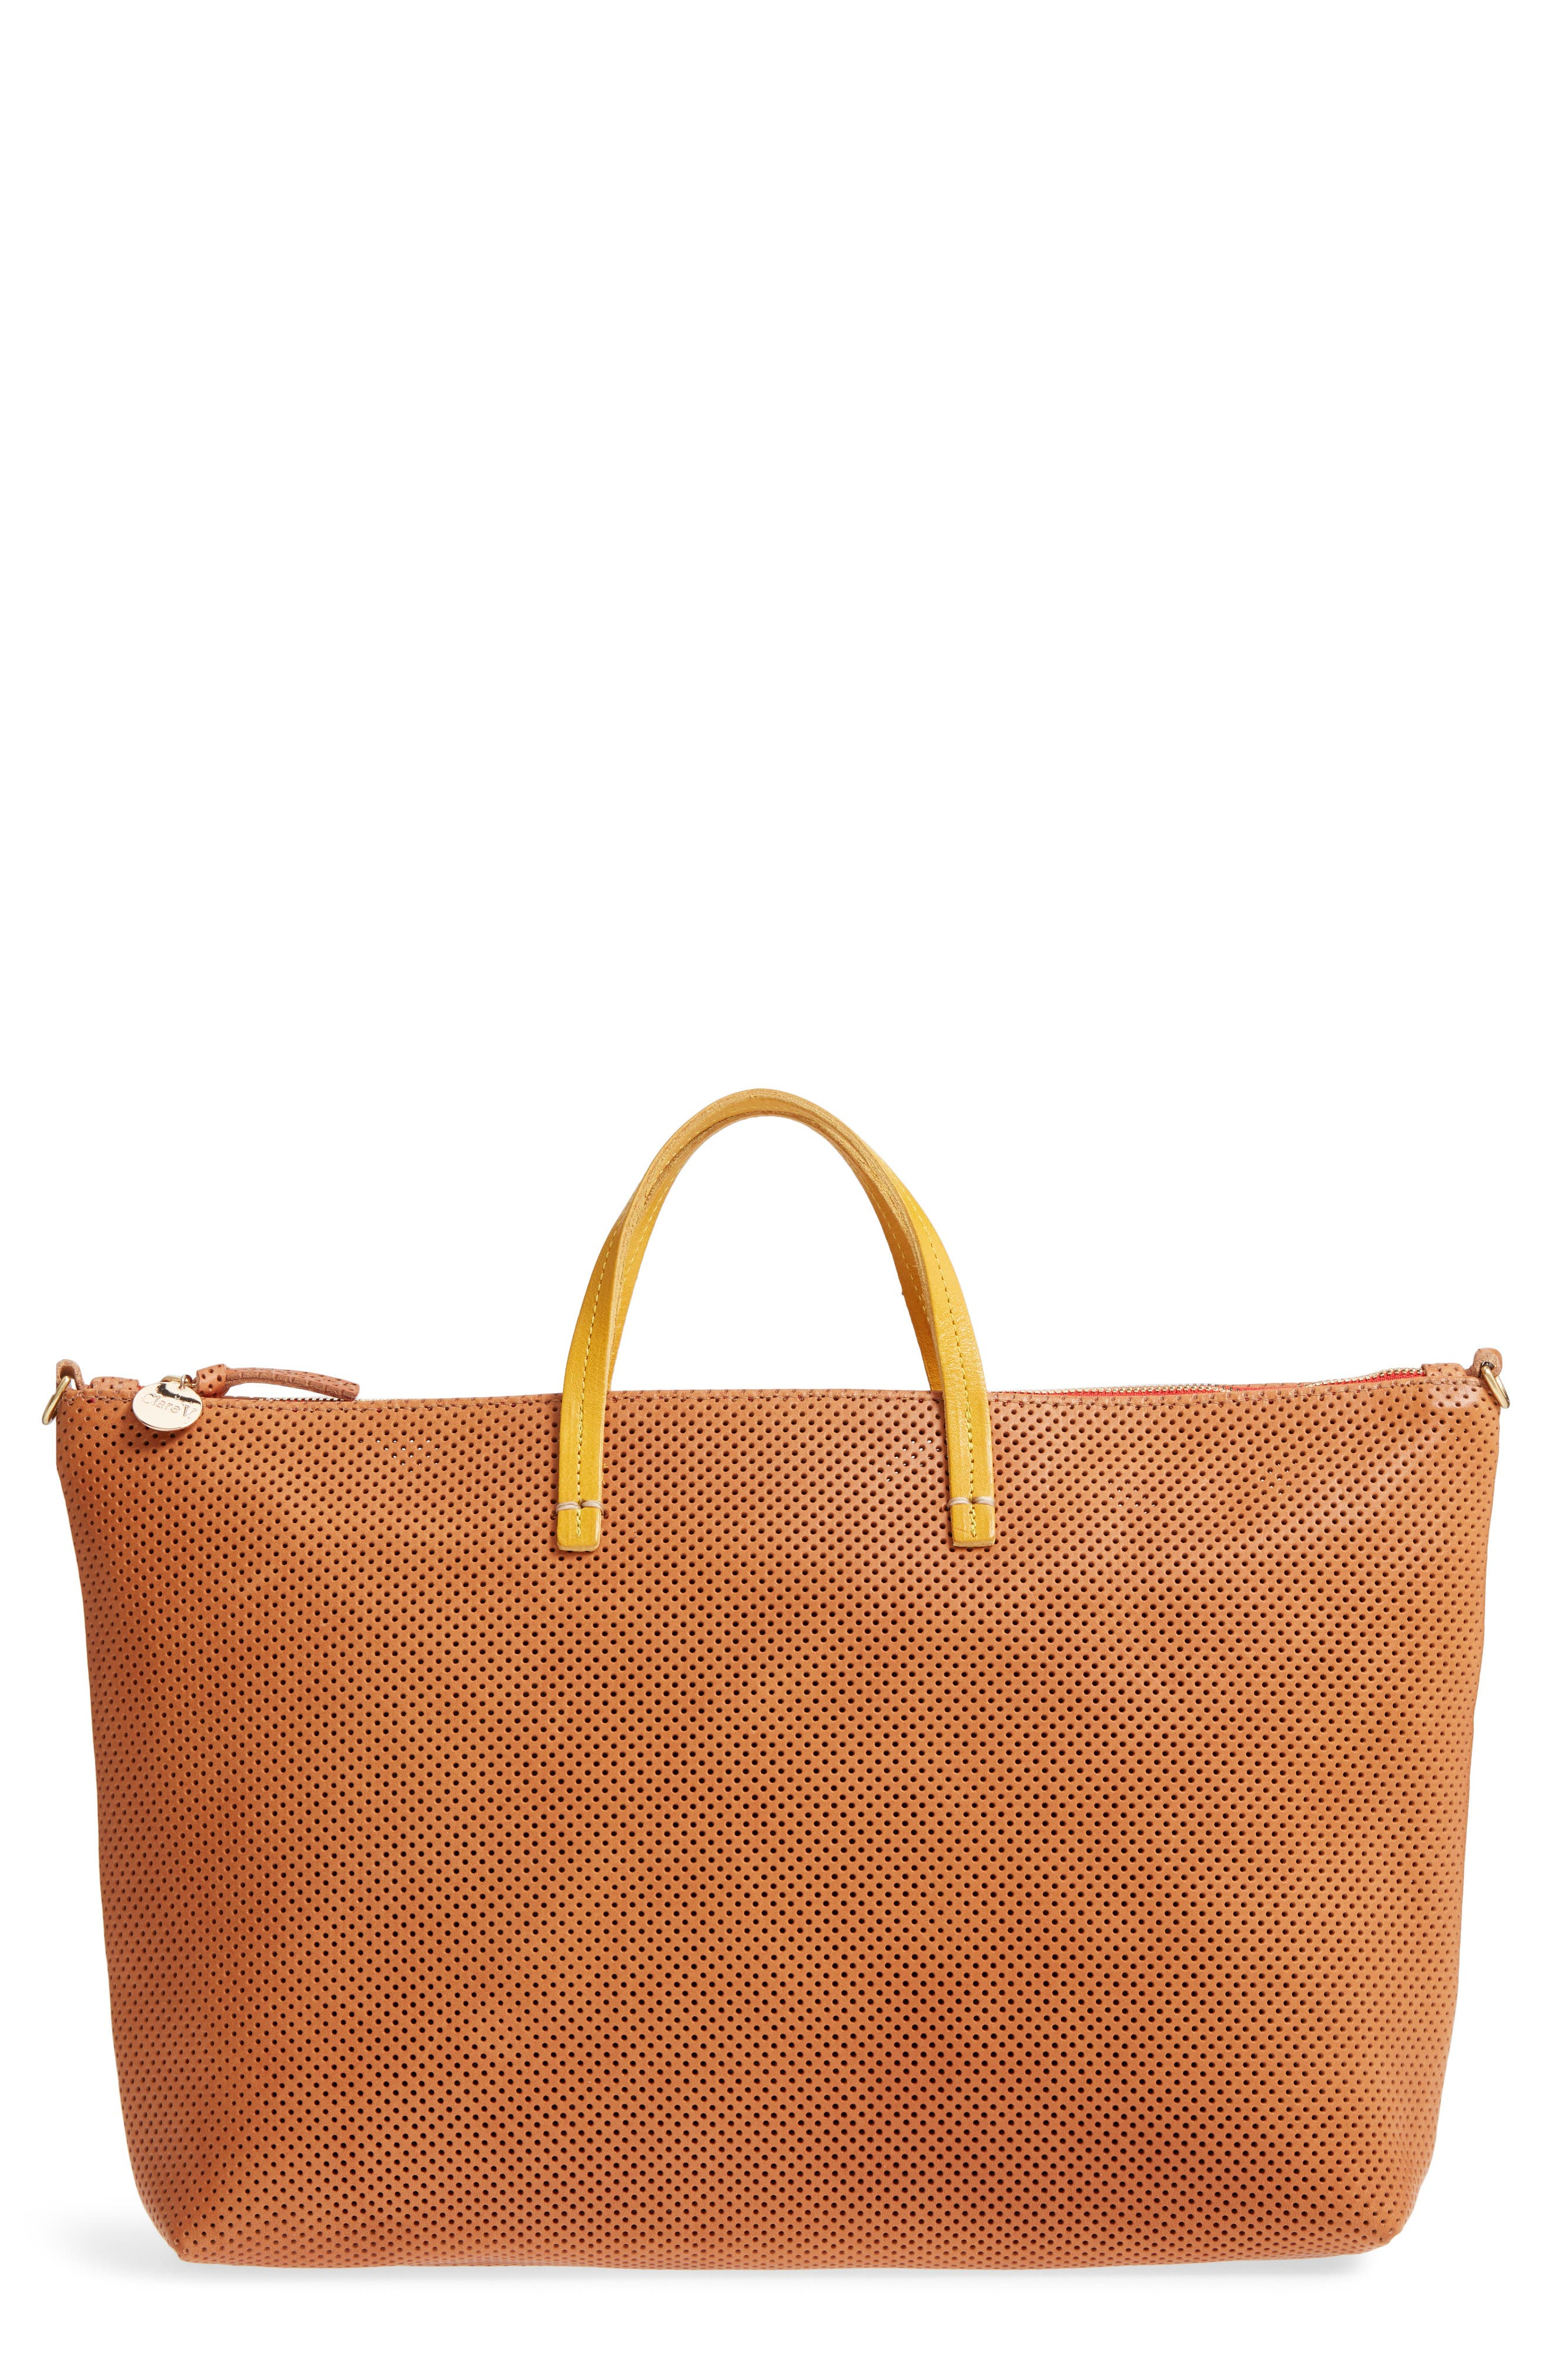 Perforated Leather Tote,                             Main thumbnail 1, color,                             200